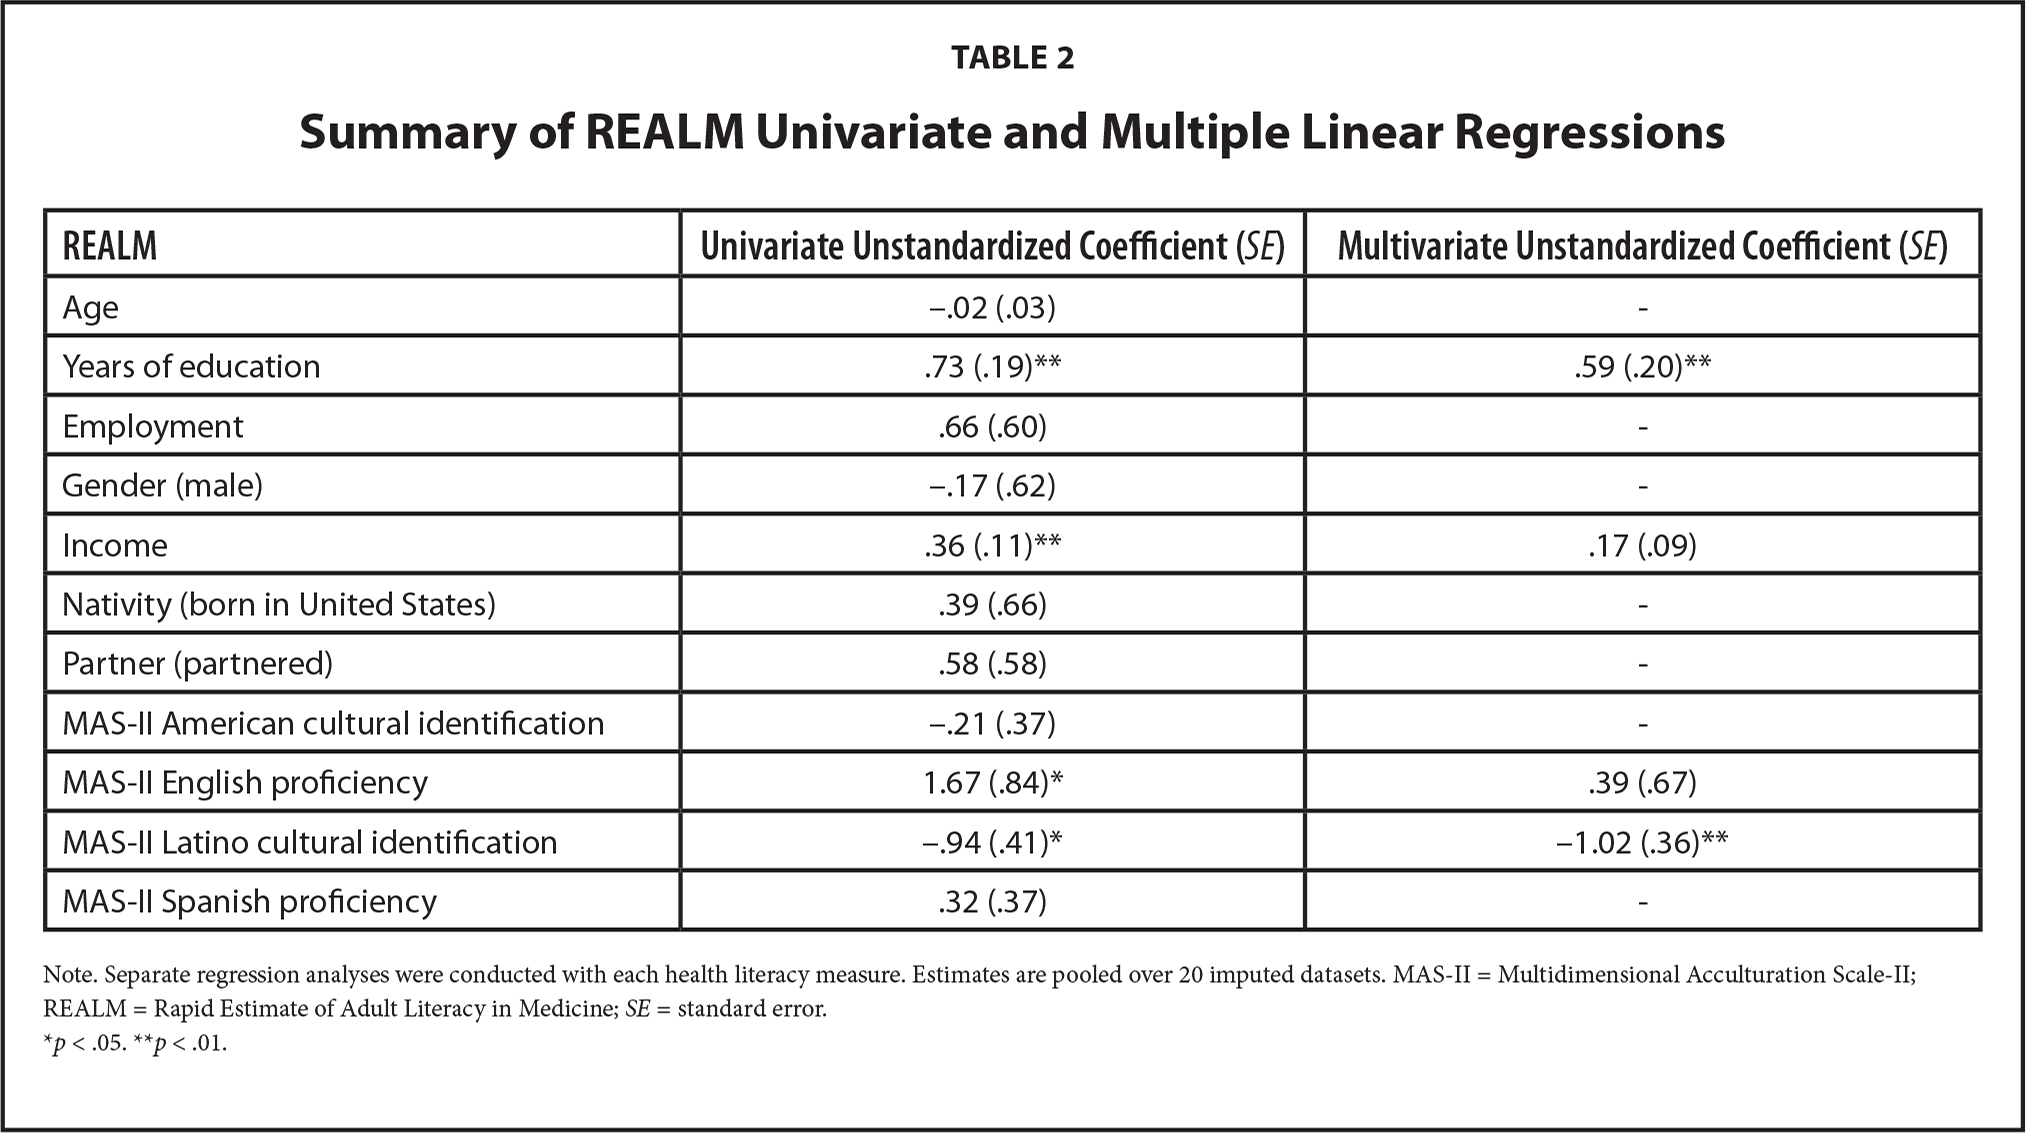 Summary of REALM Univariate and Multiple Linear Regressions